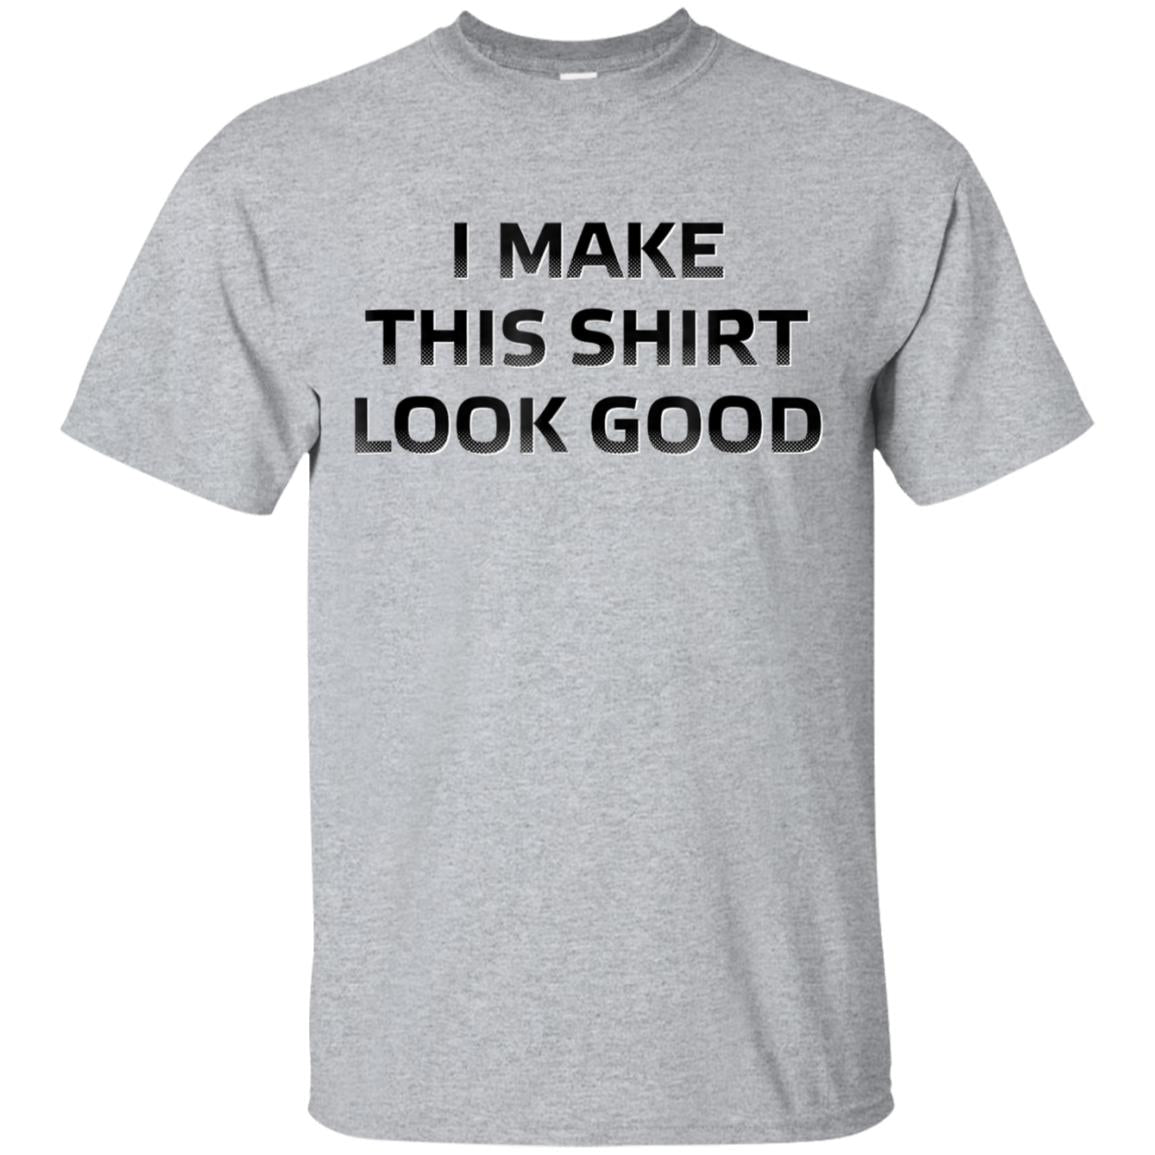 I Make This Shirt Look GOOD T Shirt- Funny Quote Gift Tshirt 99promocode